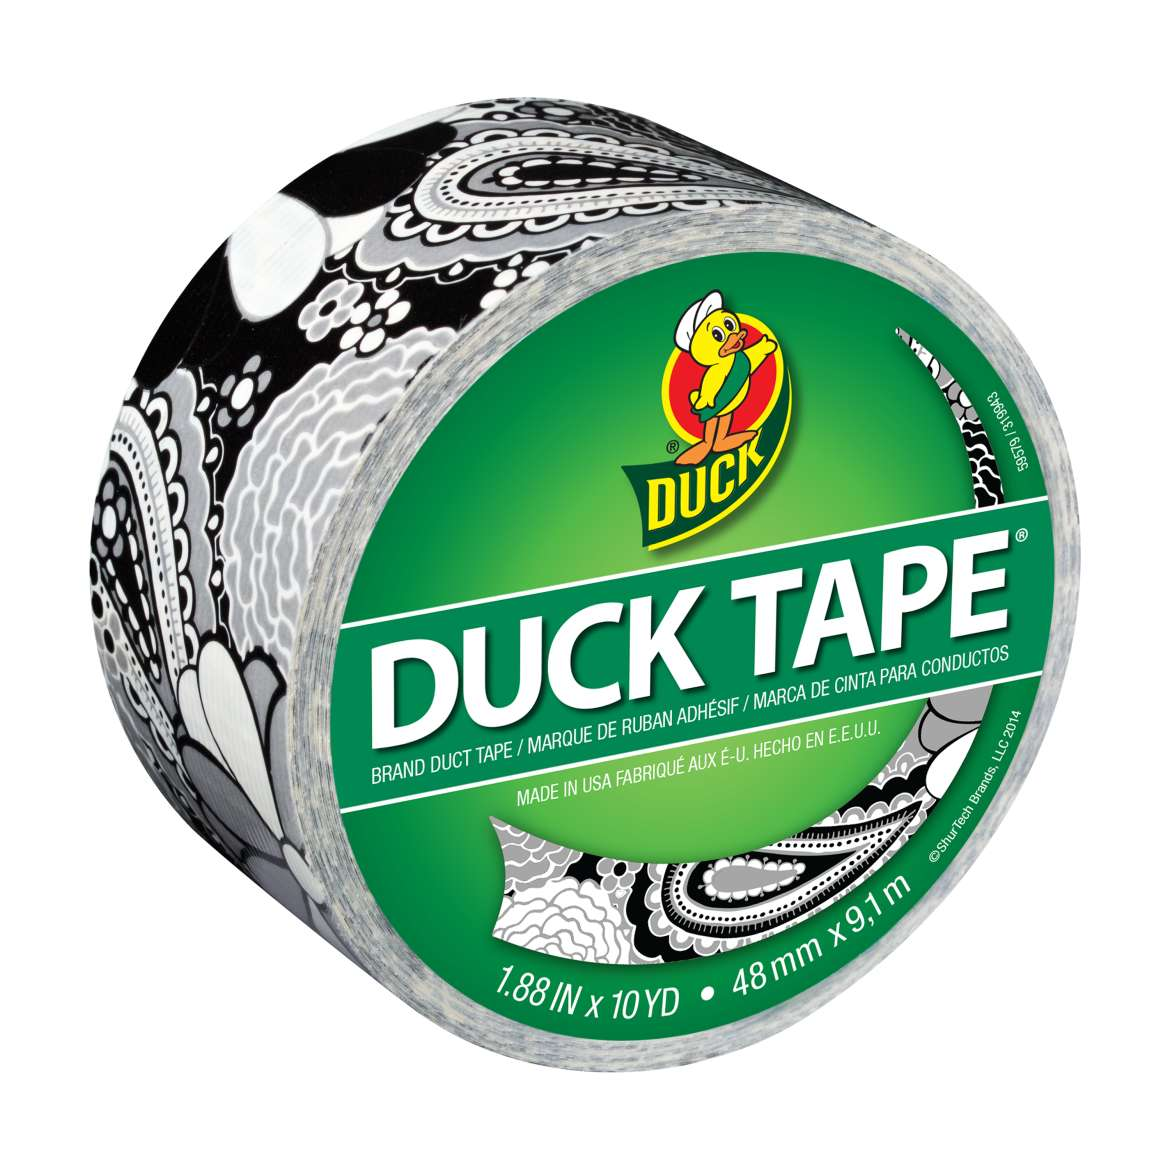 Printed Duck Tape® Brand Duct Tape - Black & White Flowers, 1.88 in. x 10 yd. Image